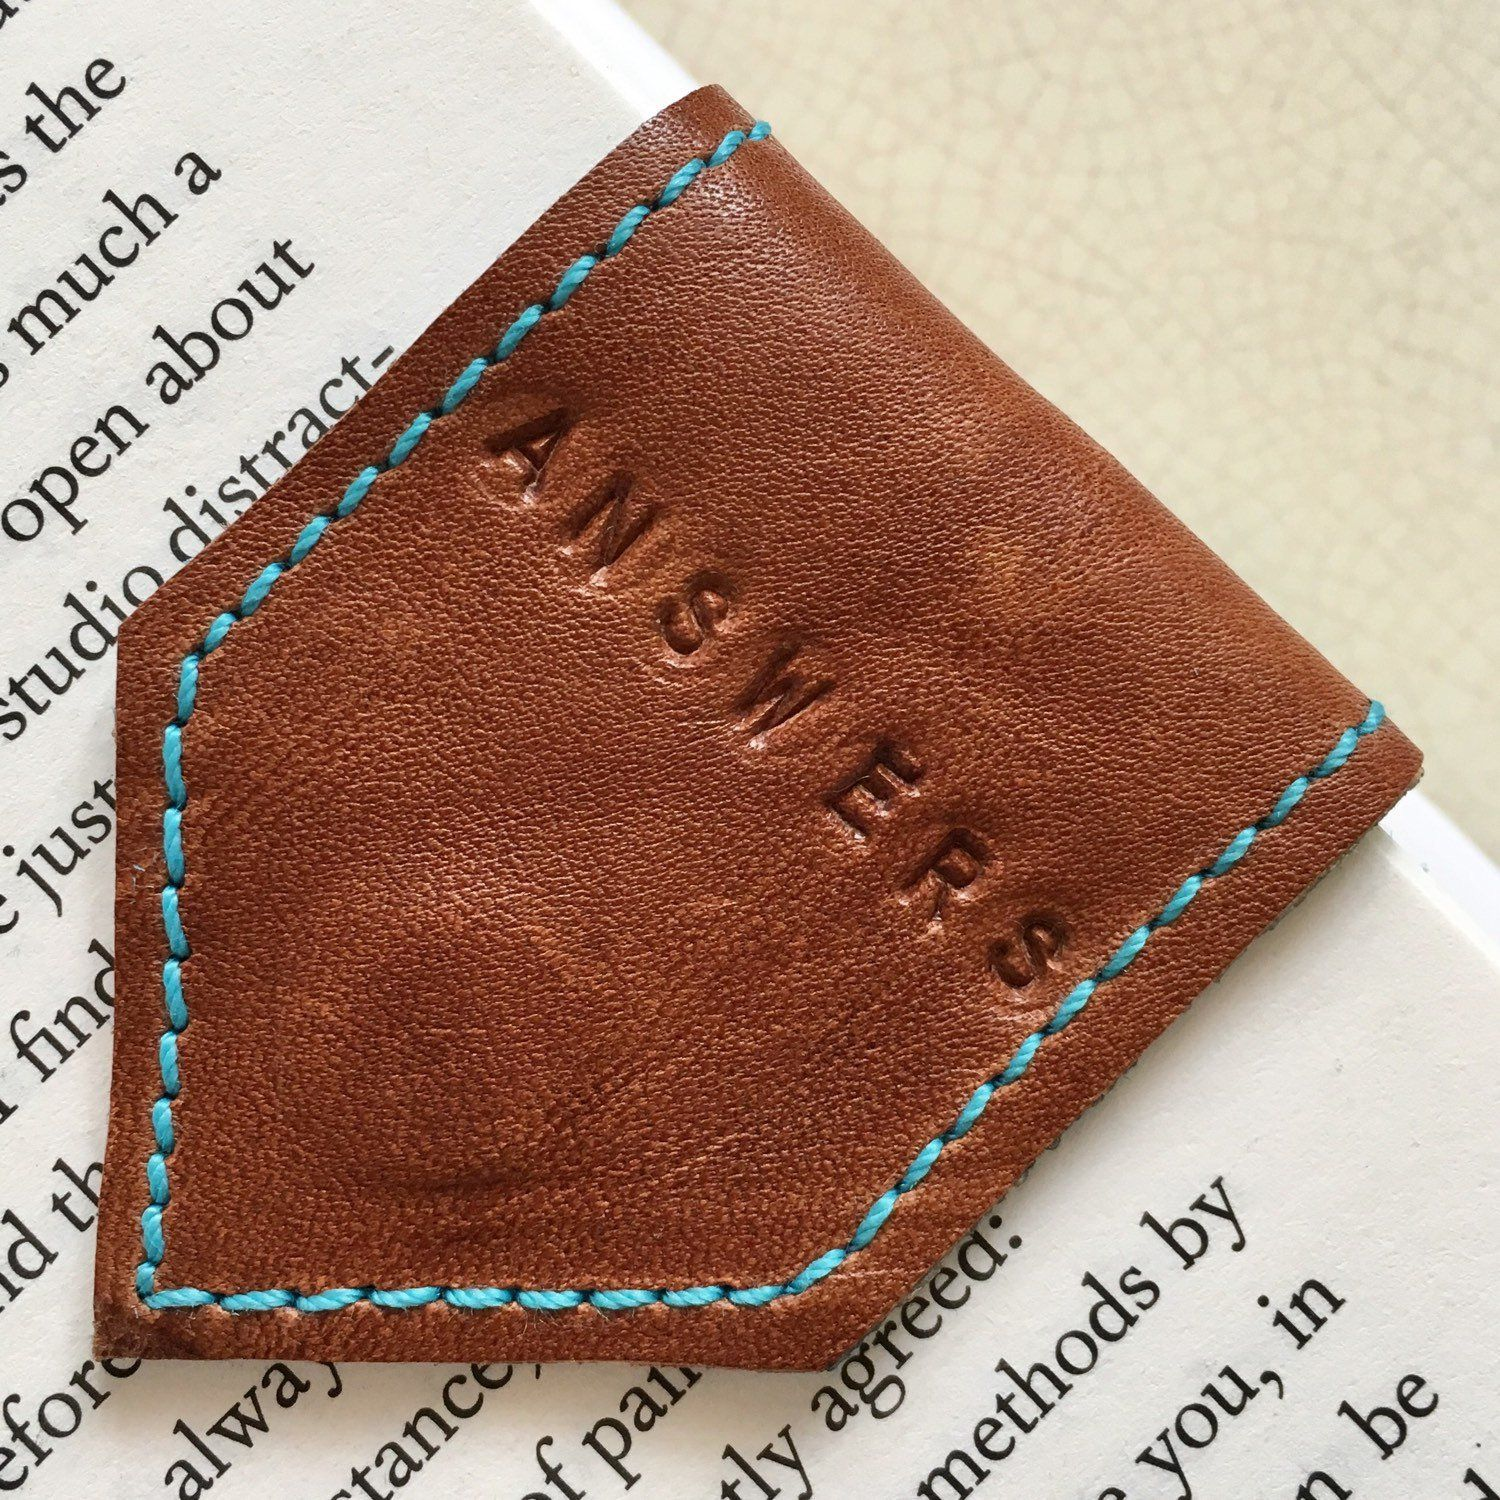 Magnetic Bookmark | Brown Leather Bookmark with Sky Blue Suede Lining | Personalise Bookmark | 3rd Anniversary Gift | Page Marker #artdupliagedelivres